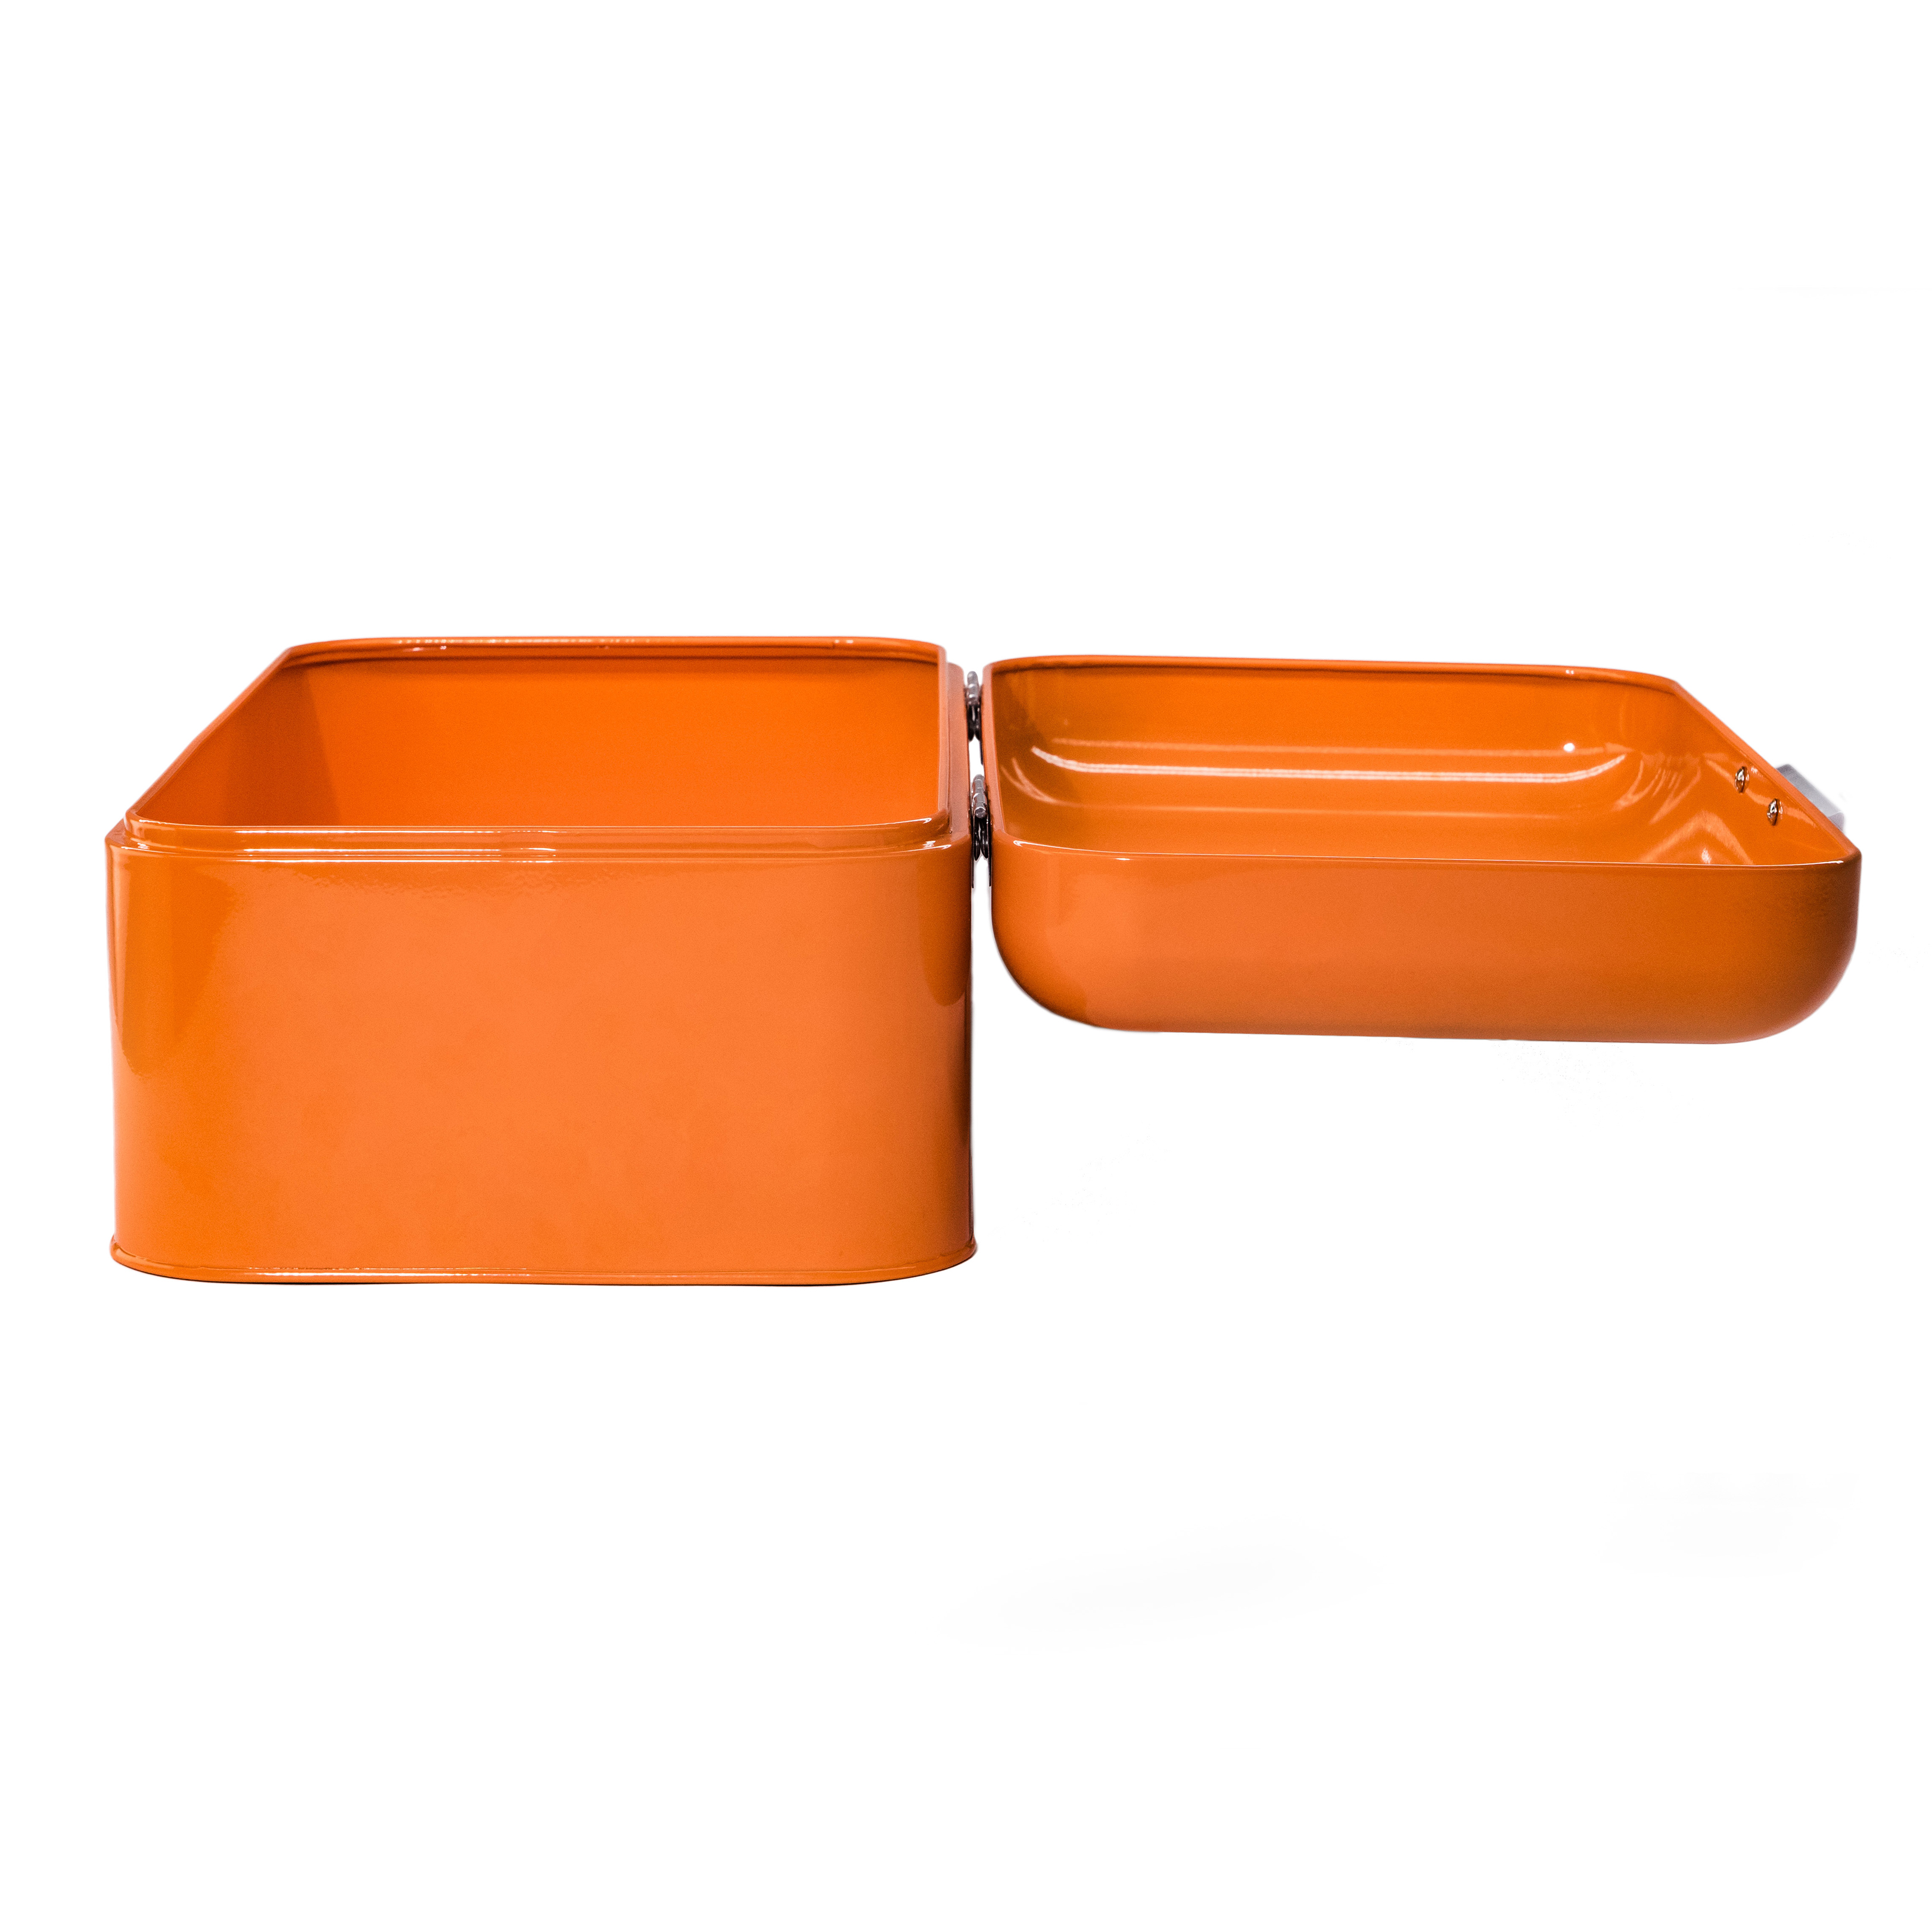 Orange Bread Bin Side